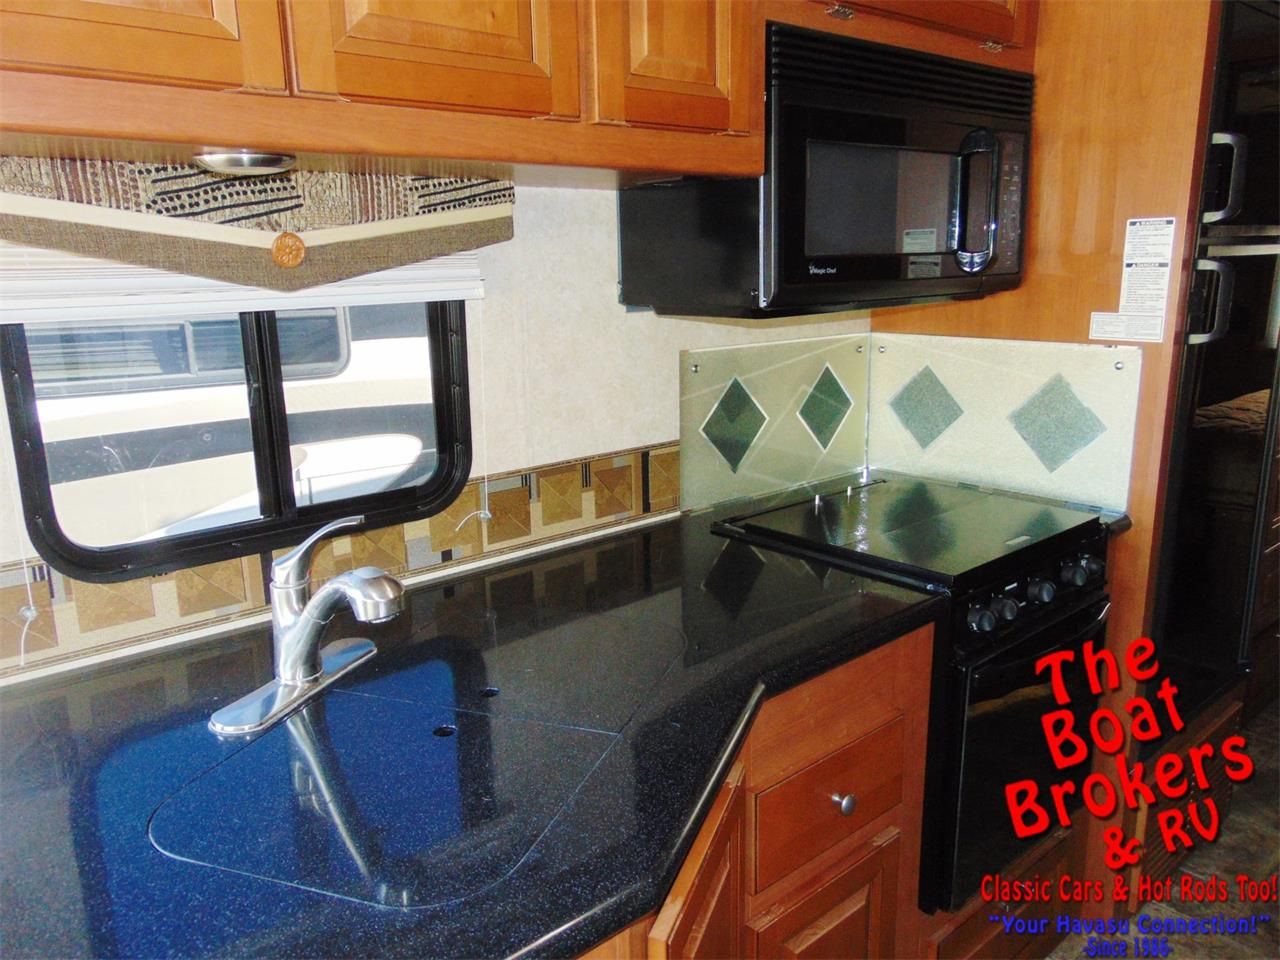 Large Picture of 2012 Forest River Recreational Vehicle located in Lake Havasu Arizona Offered by The Boat Brokers - Q5L8